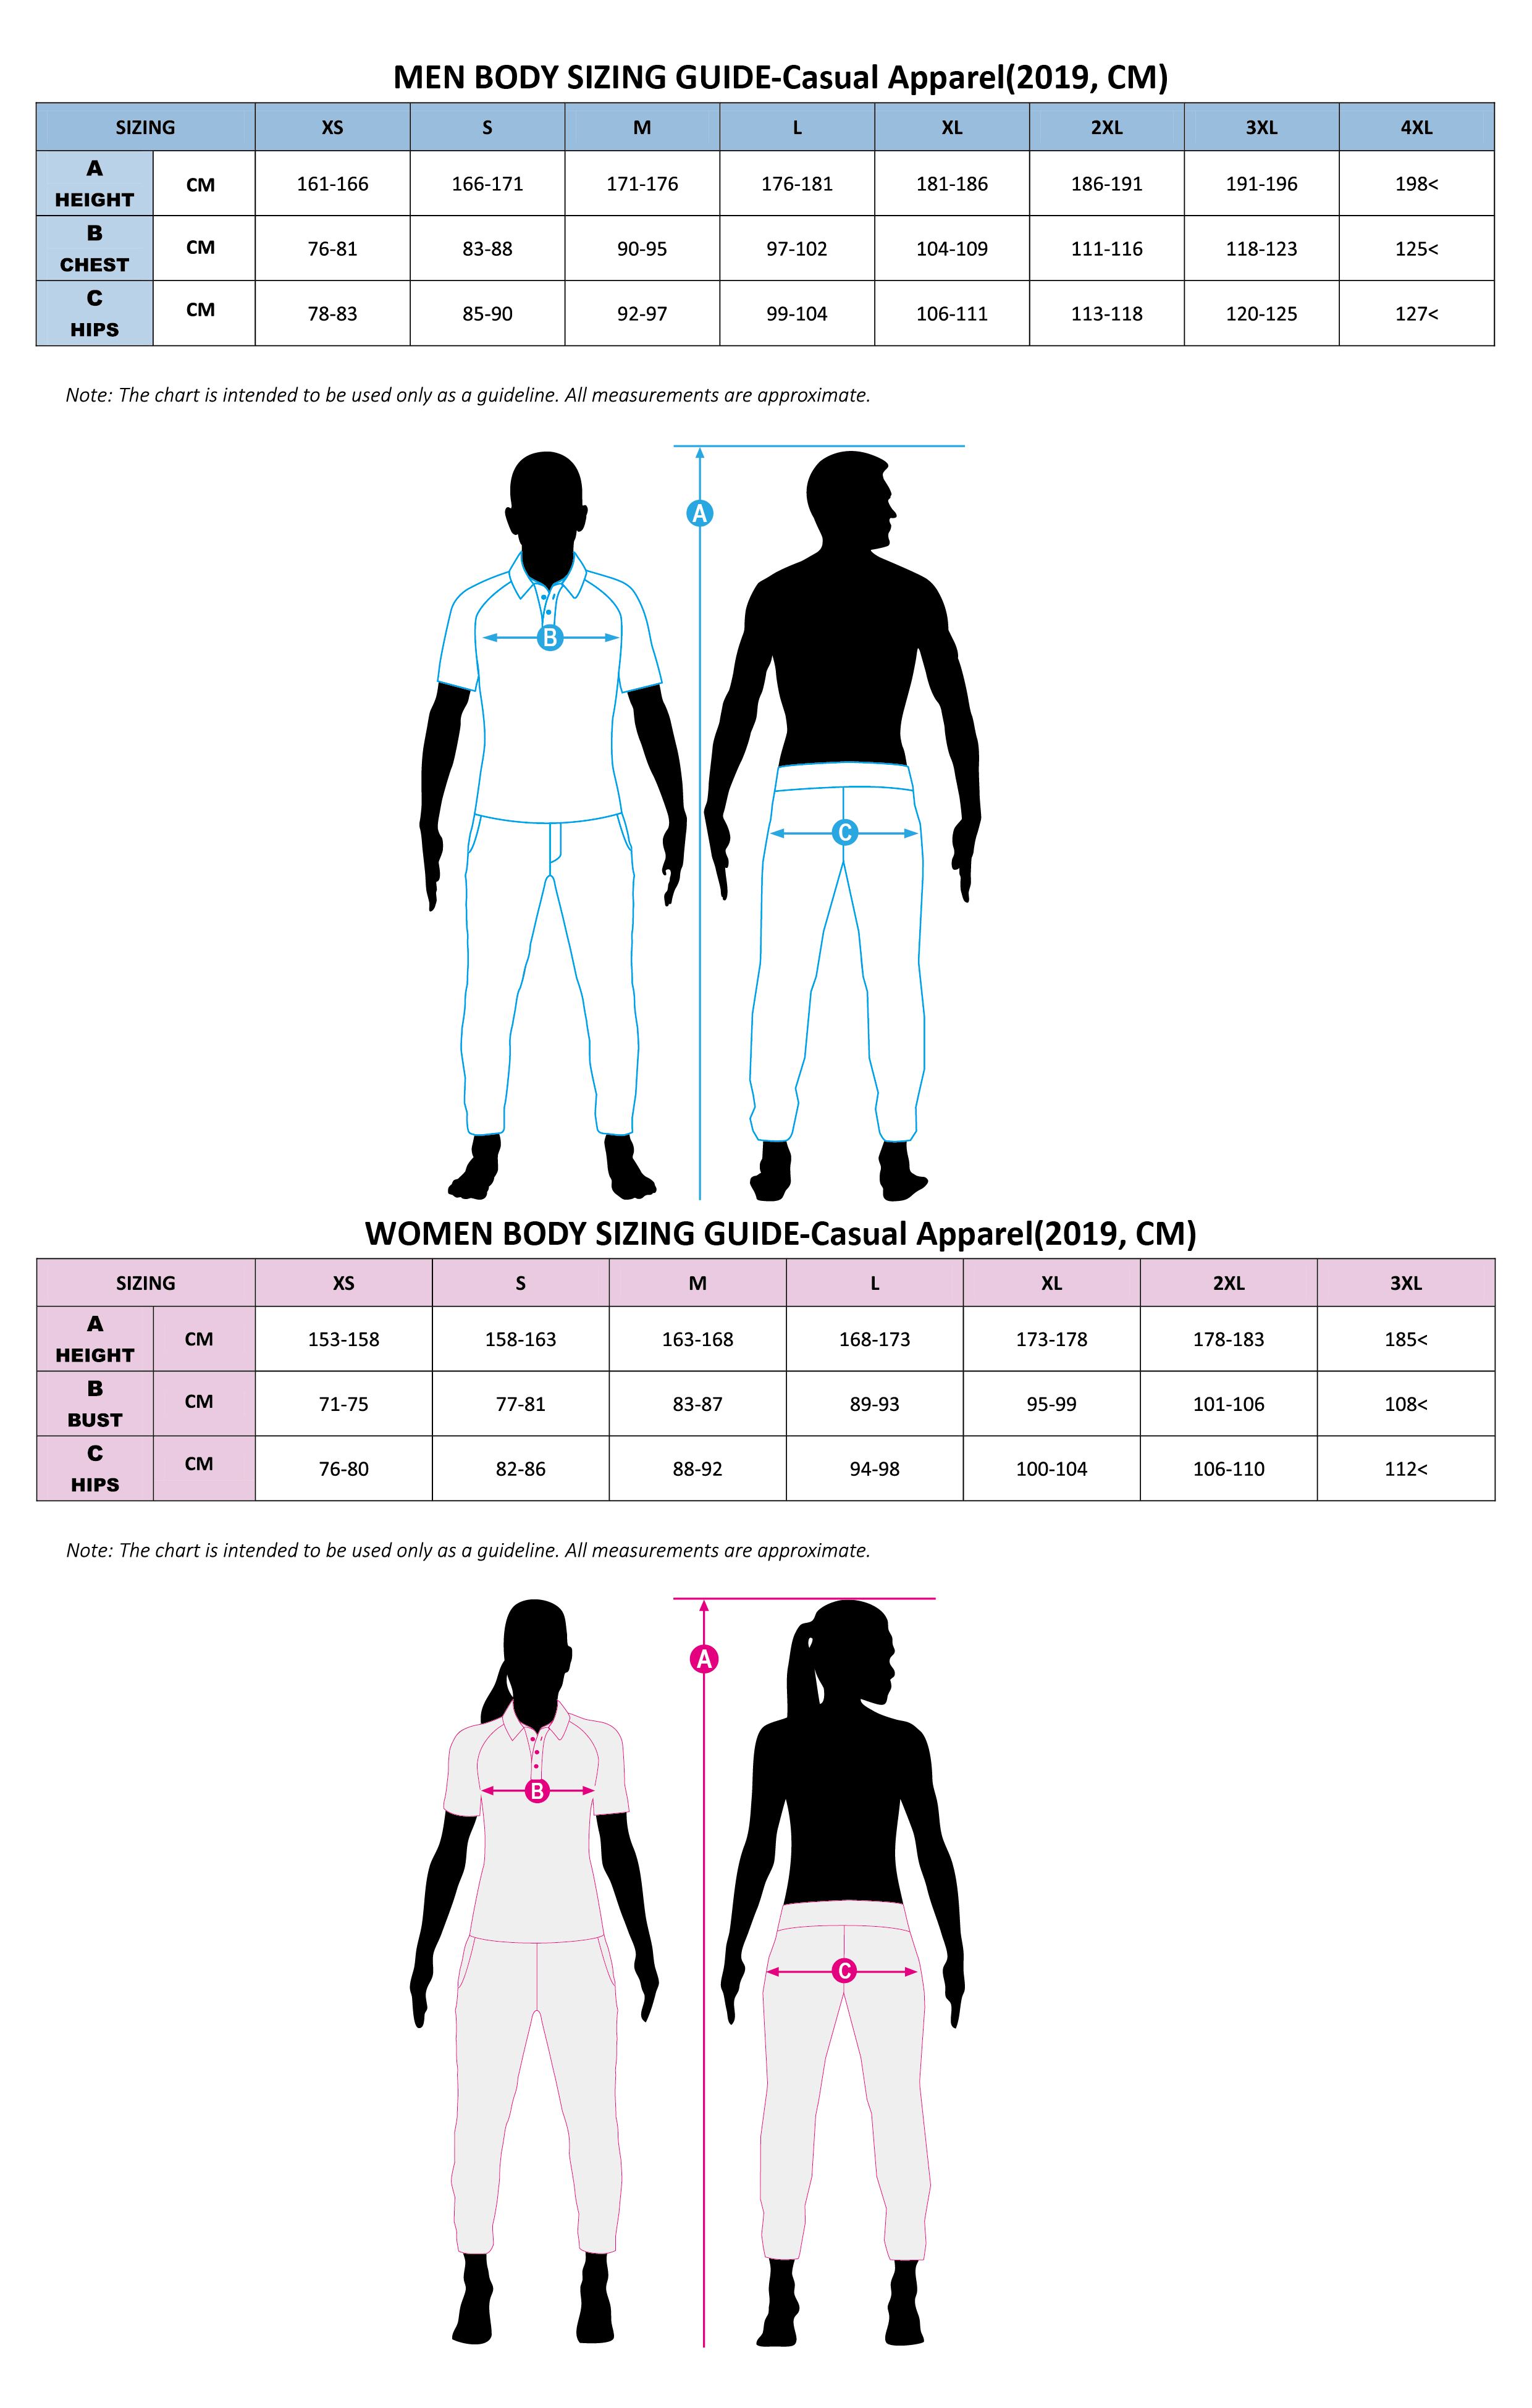 Body Sizing-Casual Apparel